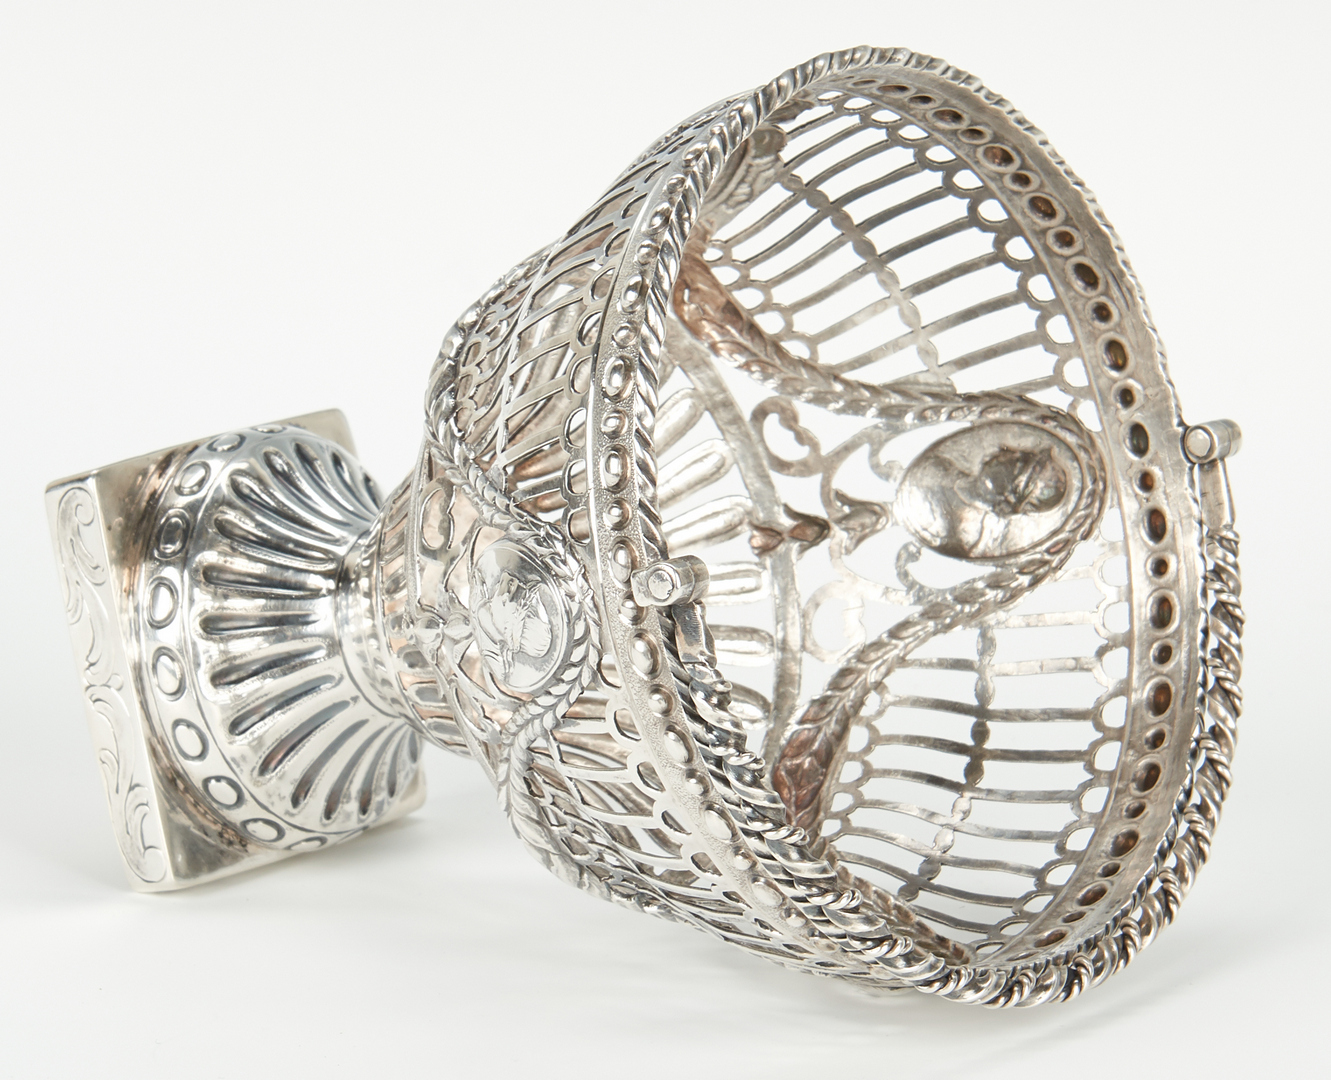 Lot 56: 18th Cent. English Sterling Silver Pierced Basket